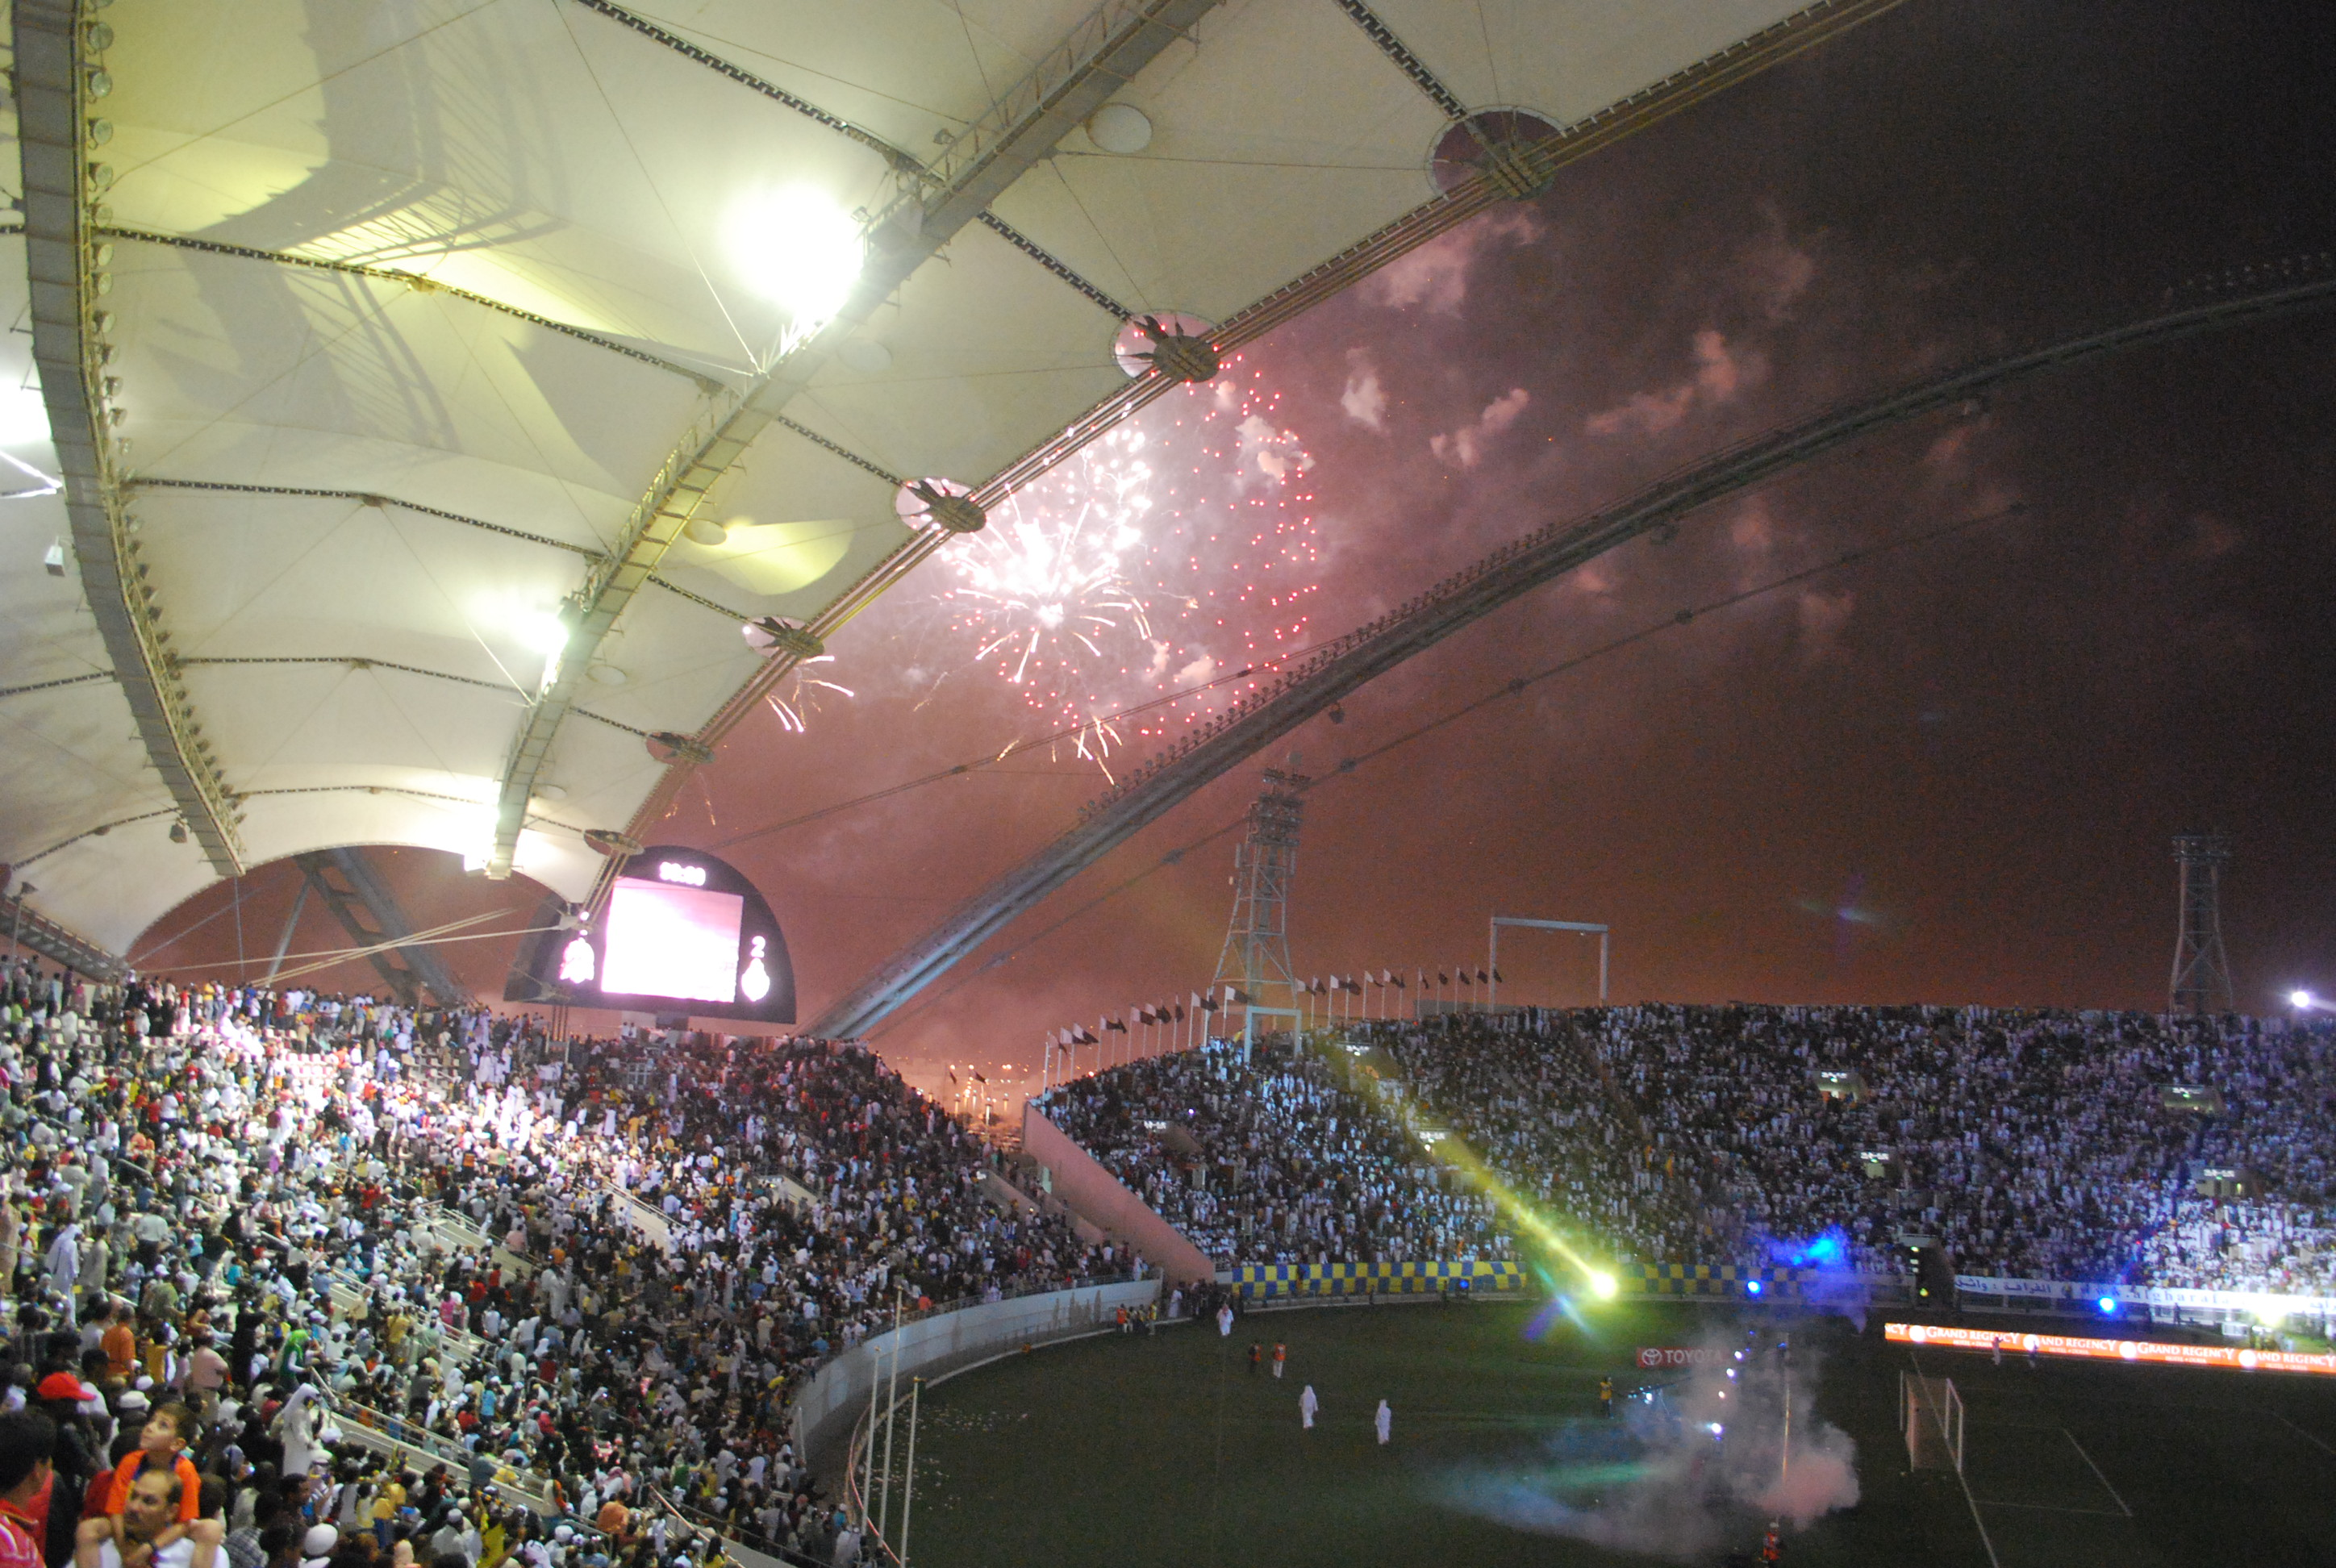 Doha World Cup 2022